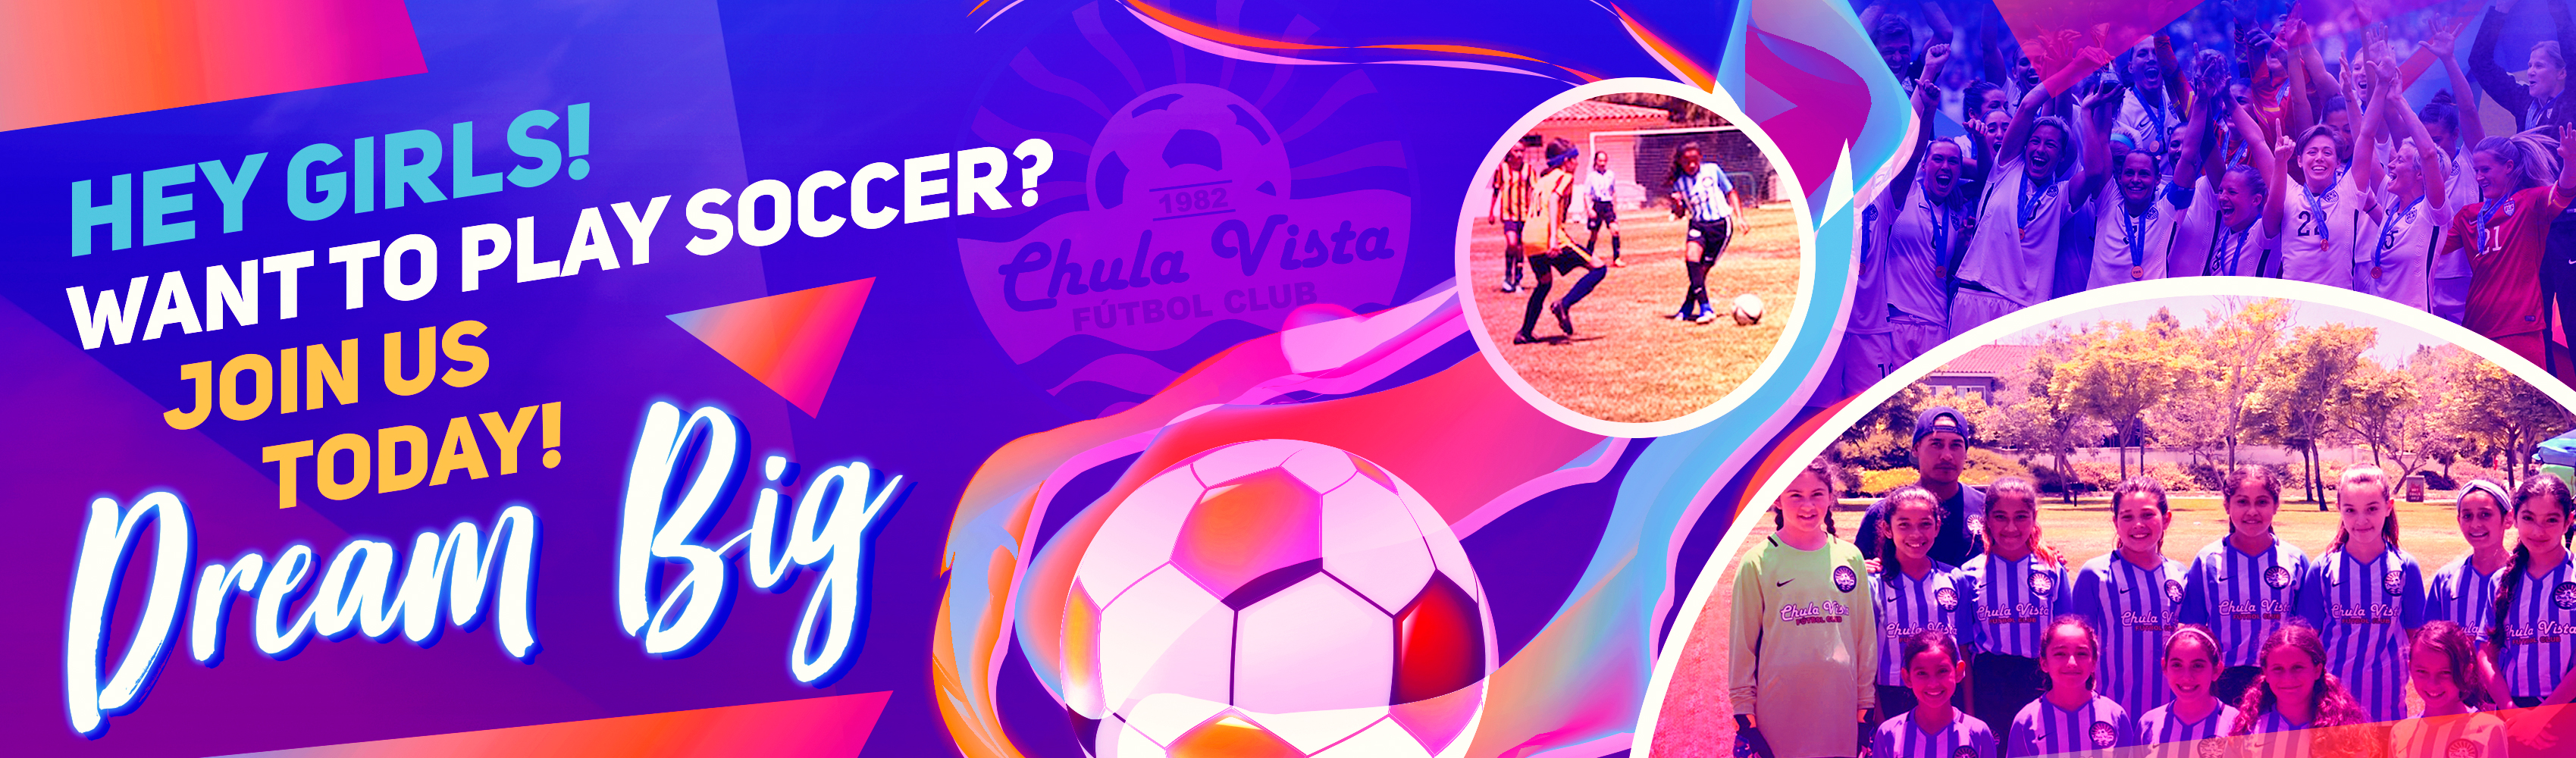 Chula Vista FC leading with its girls program